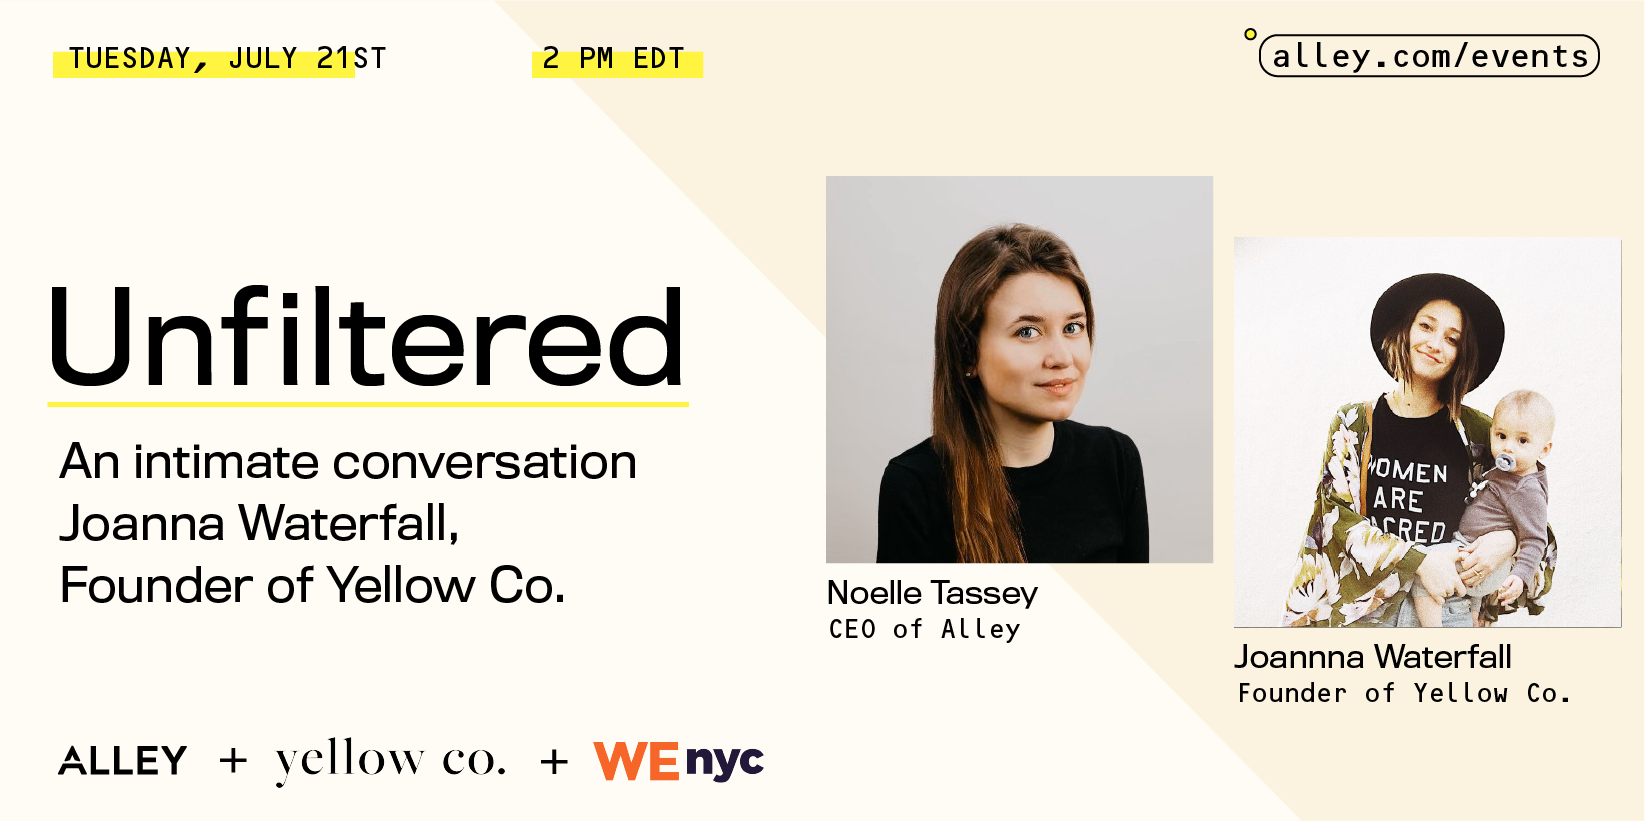 Unfiltered: Joanna Waterfall Founder of Yellow Co.